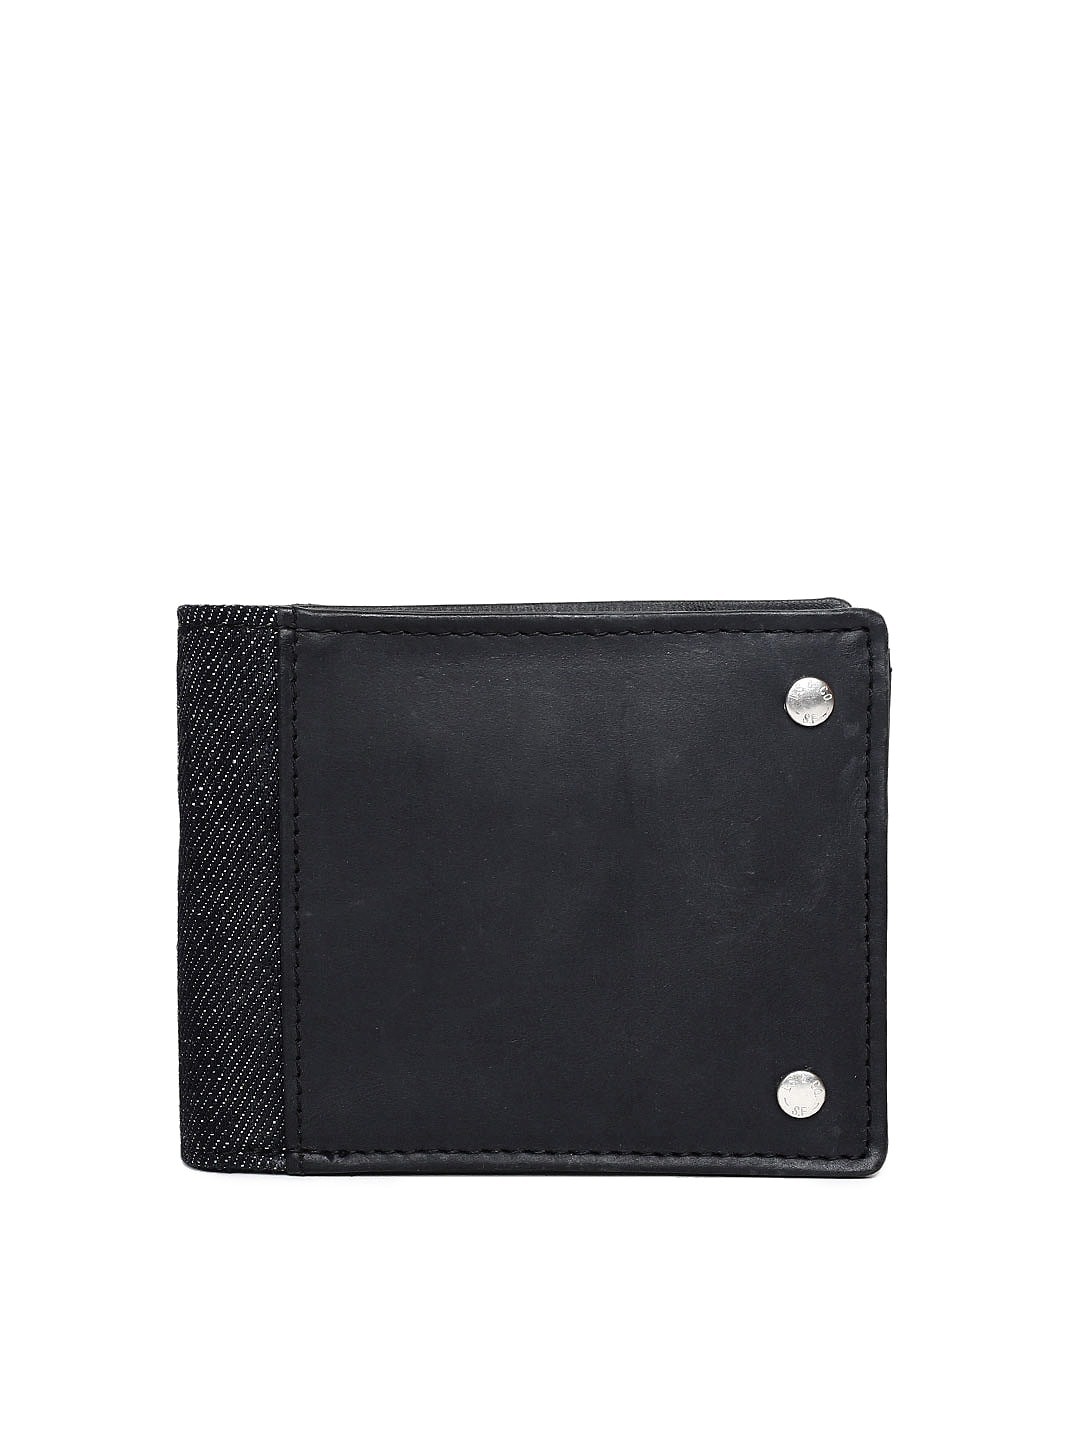 9ee30a3d54 Online Shopping Mens Wallet - Best Photo Wallet Justiceforkenny.Org